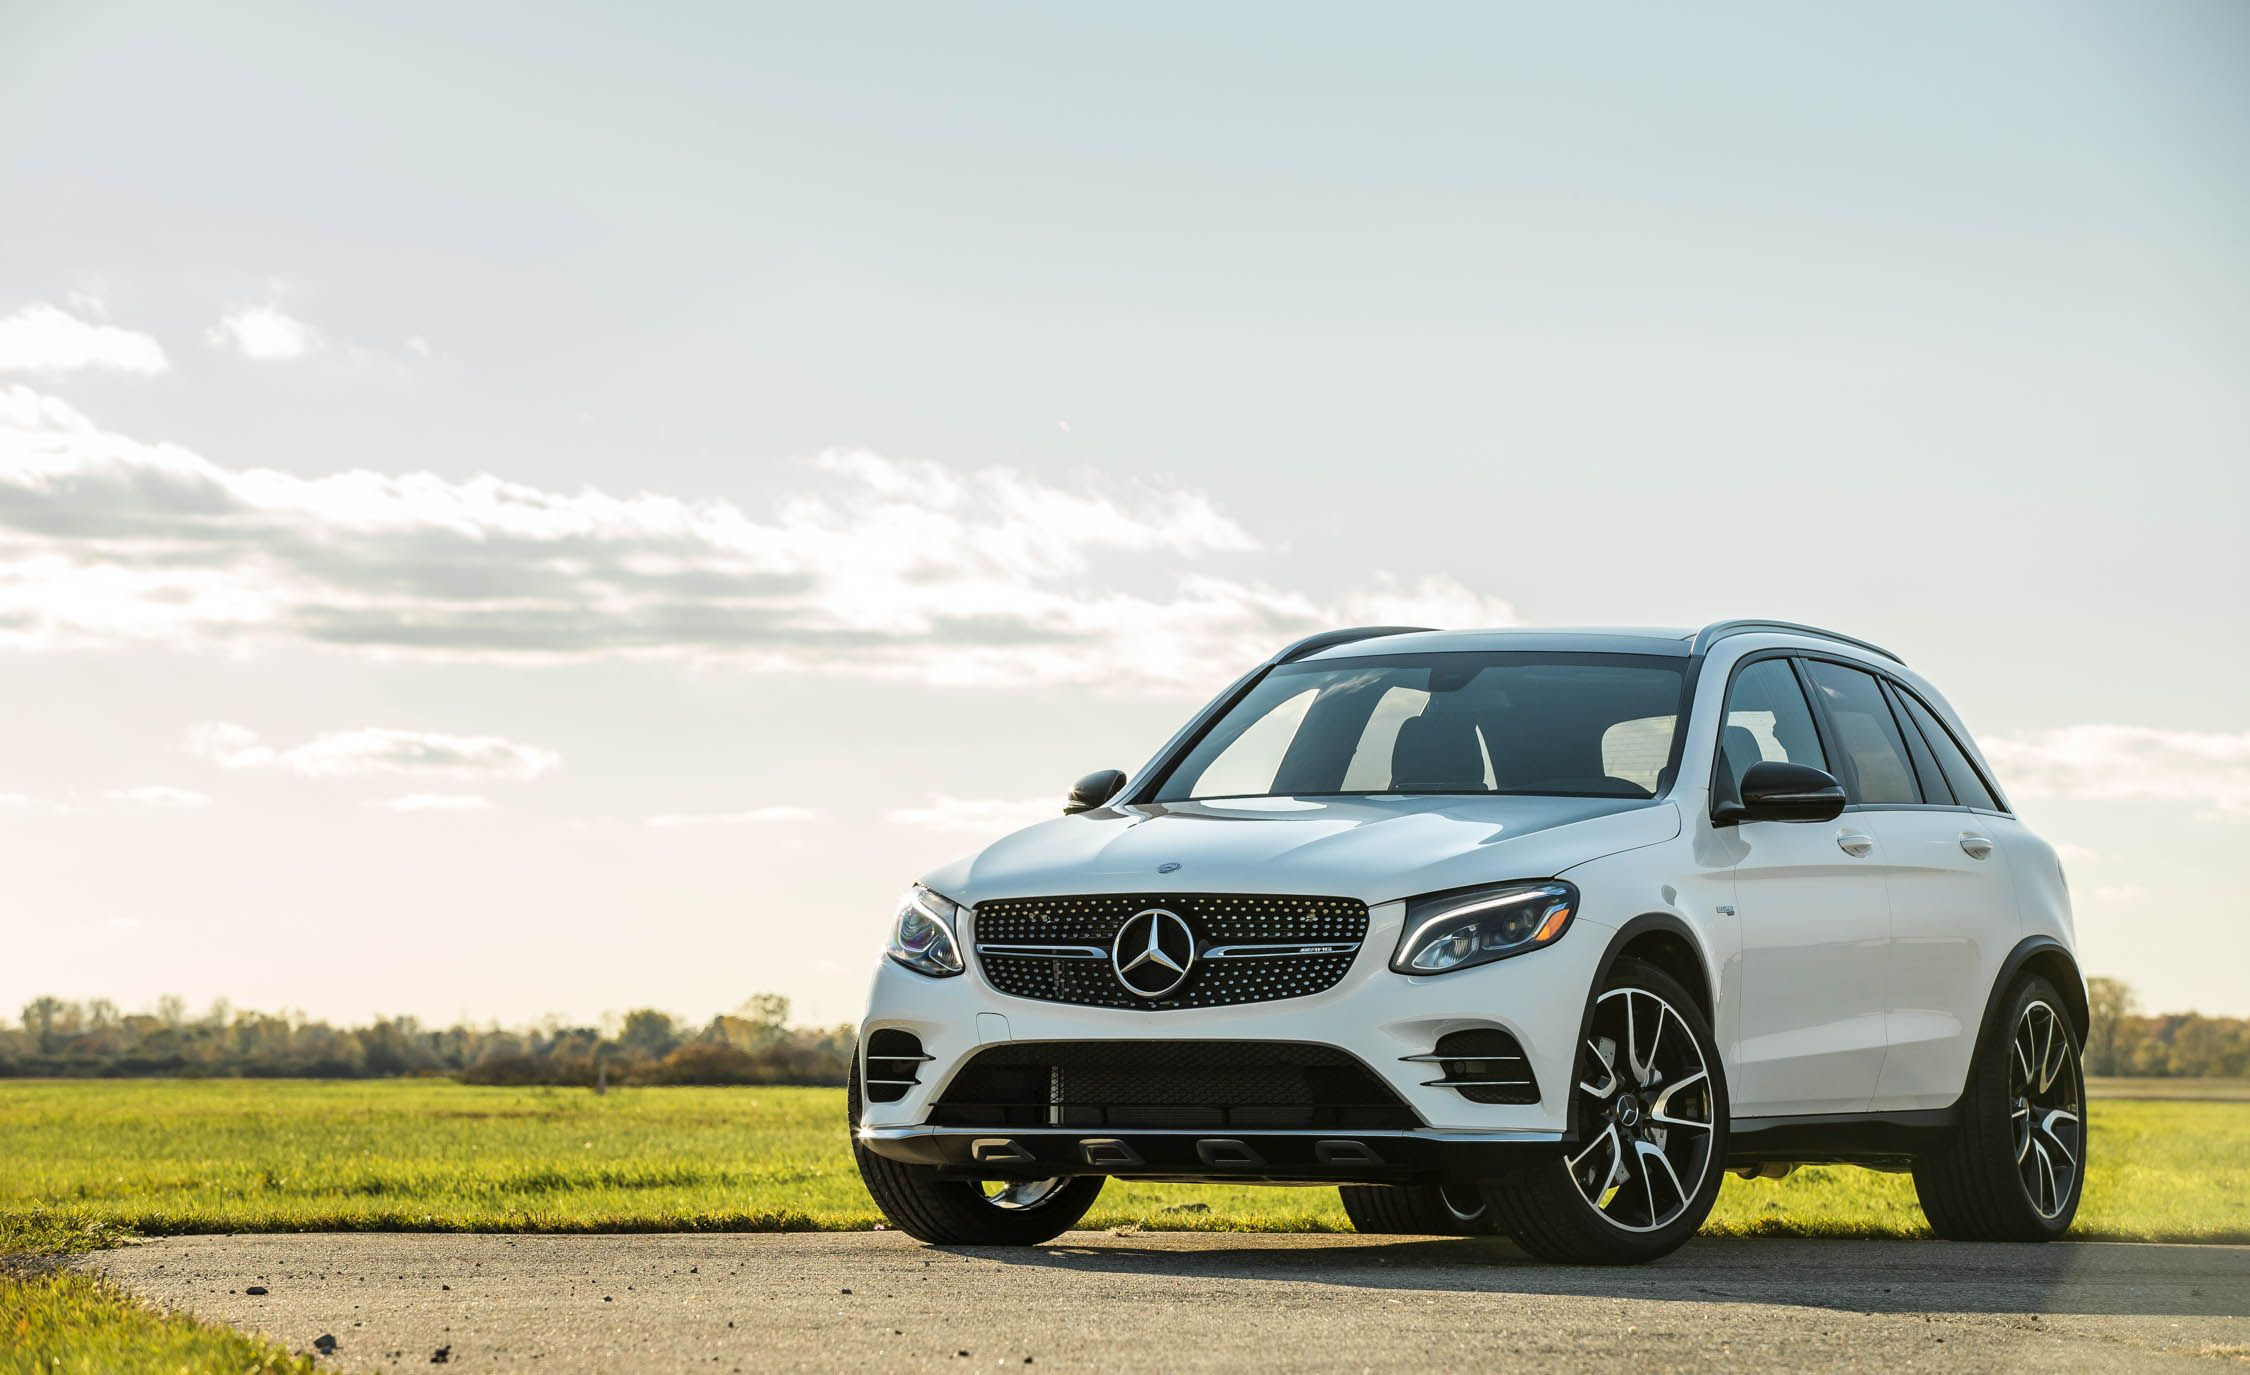 2017 Mercedes AMG GLC43 Engine and Transmission Review